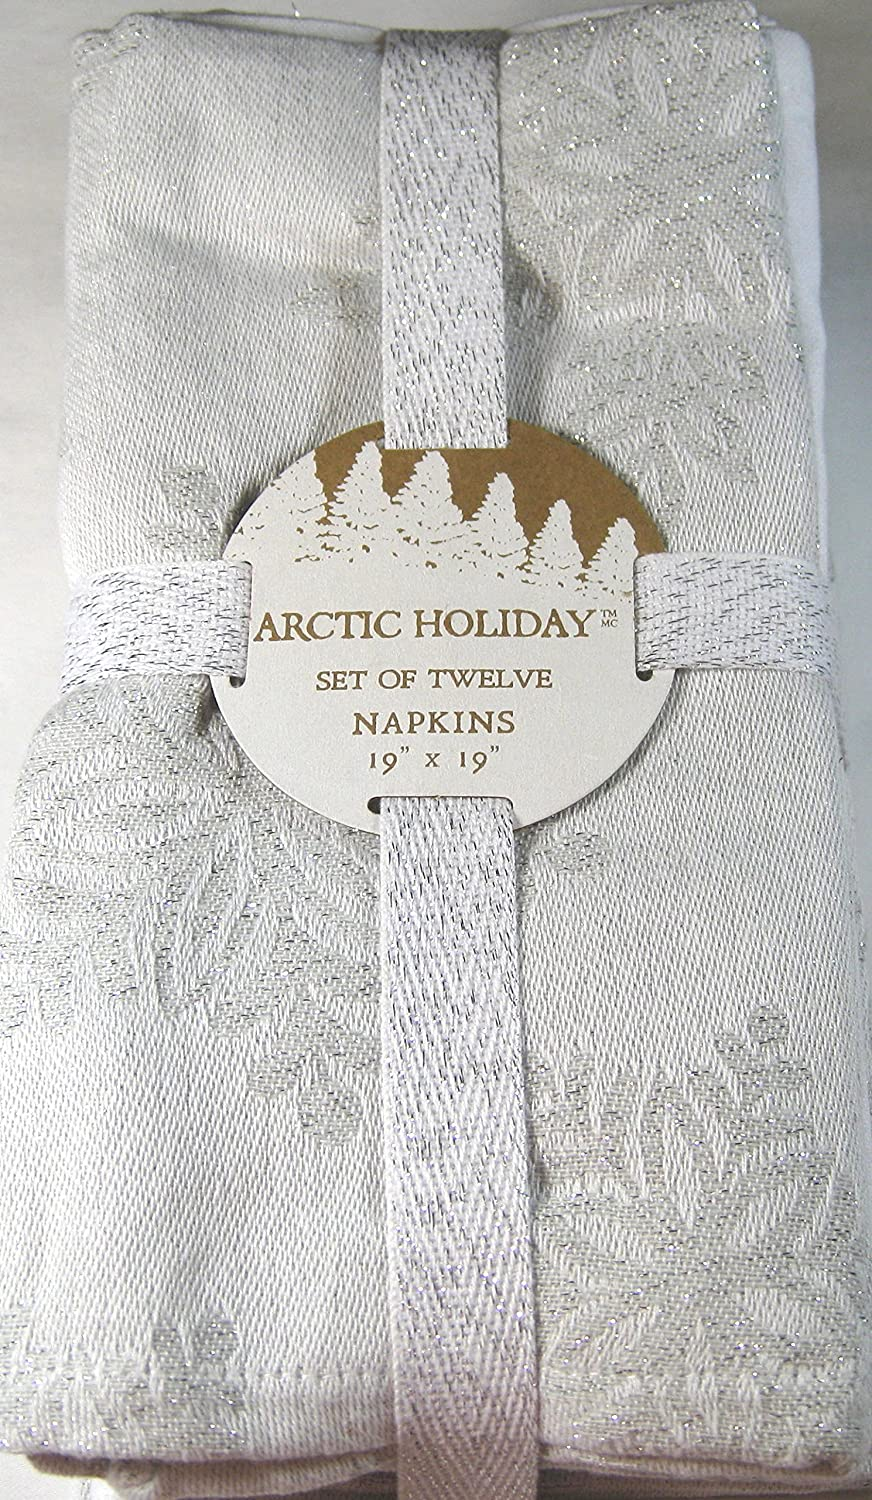 Arctic Holiday Snowflakes Dinner Napkins - Set of 12